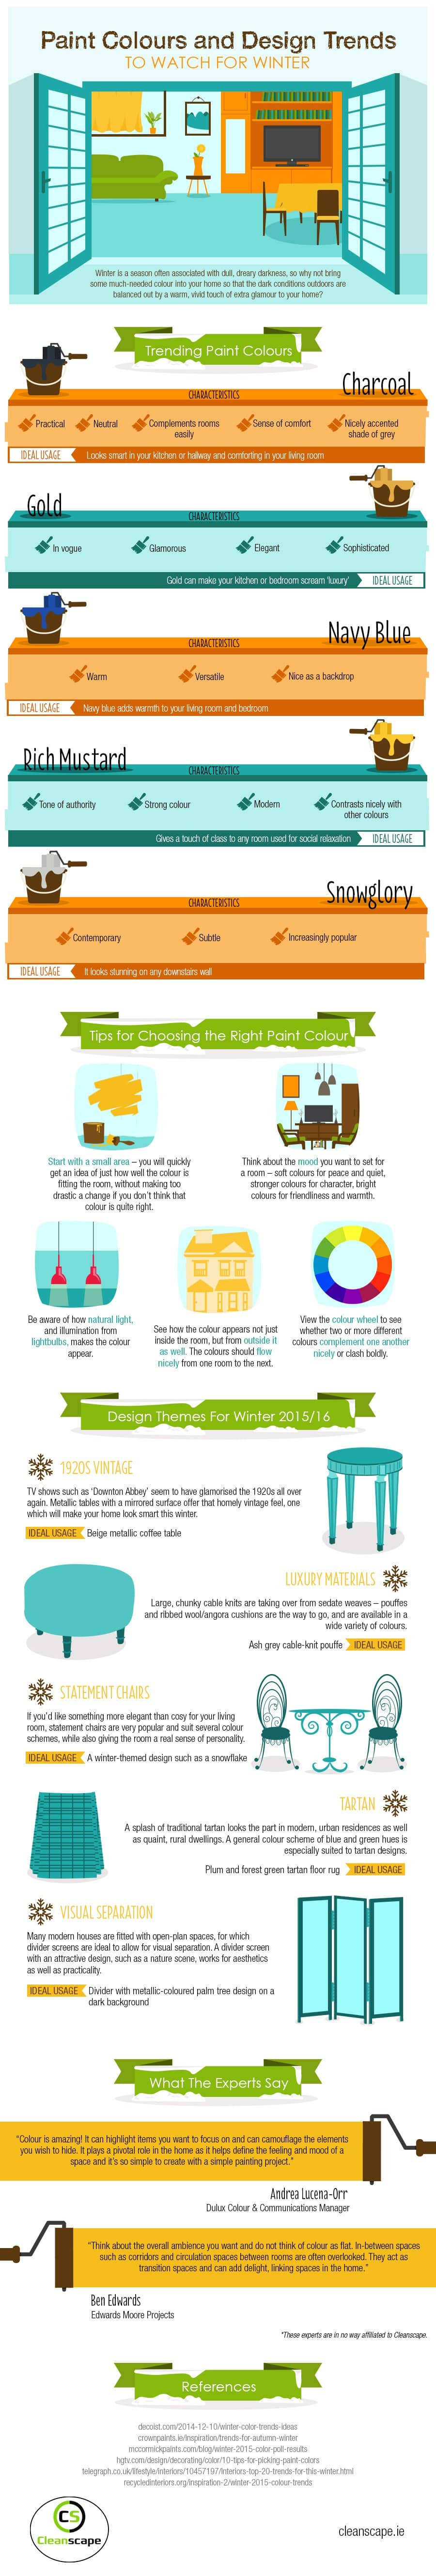 paint-colours-and-design-trends-to-watch-for-winter-infographic